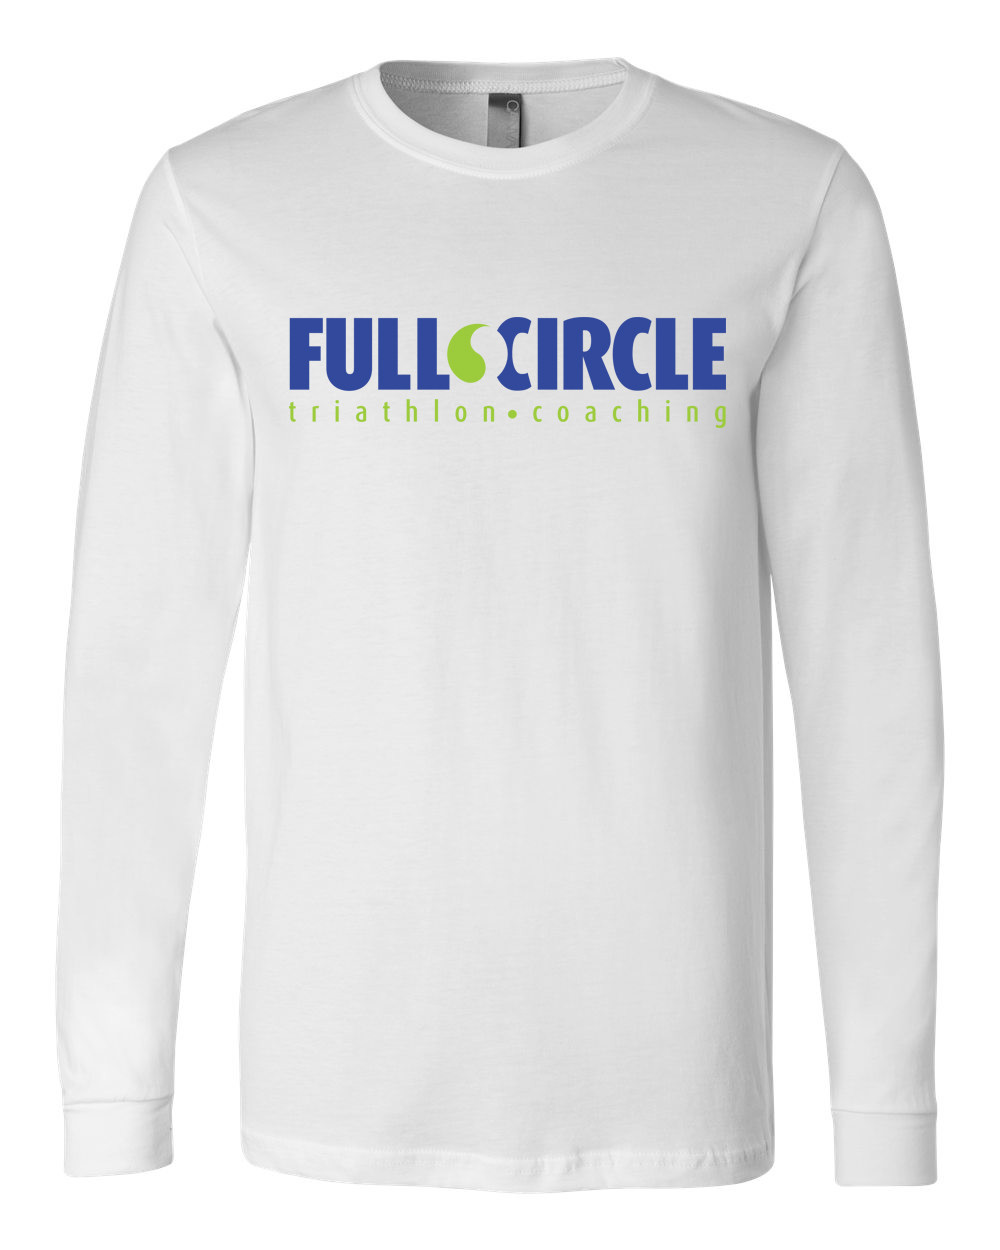 Men's Long Sleeve WHITE Tee